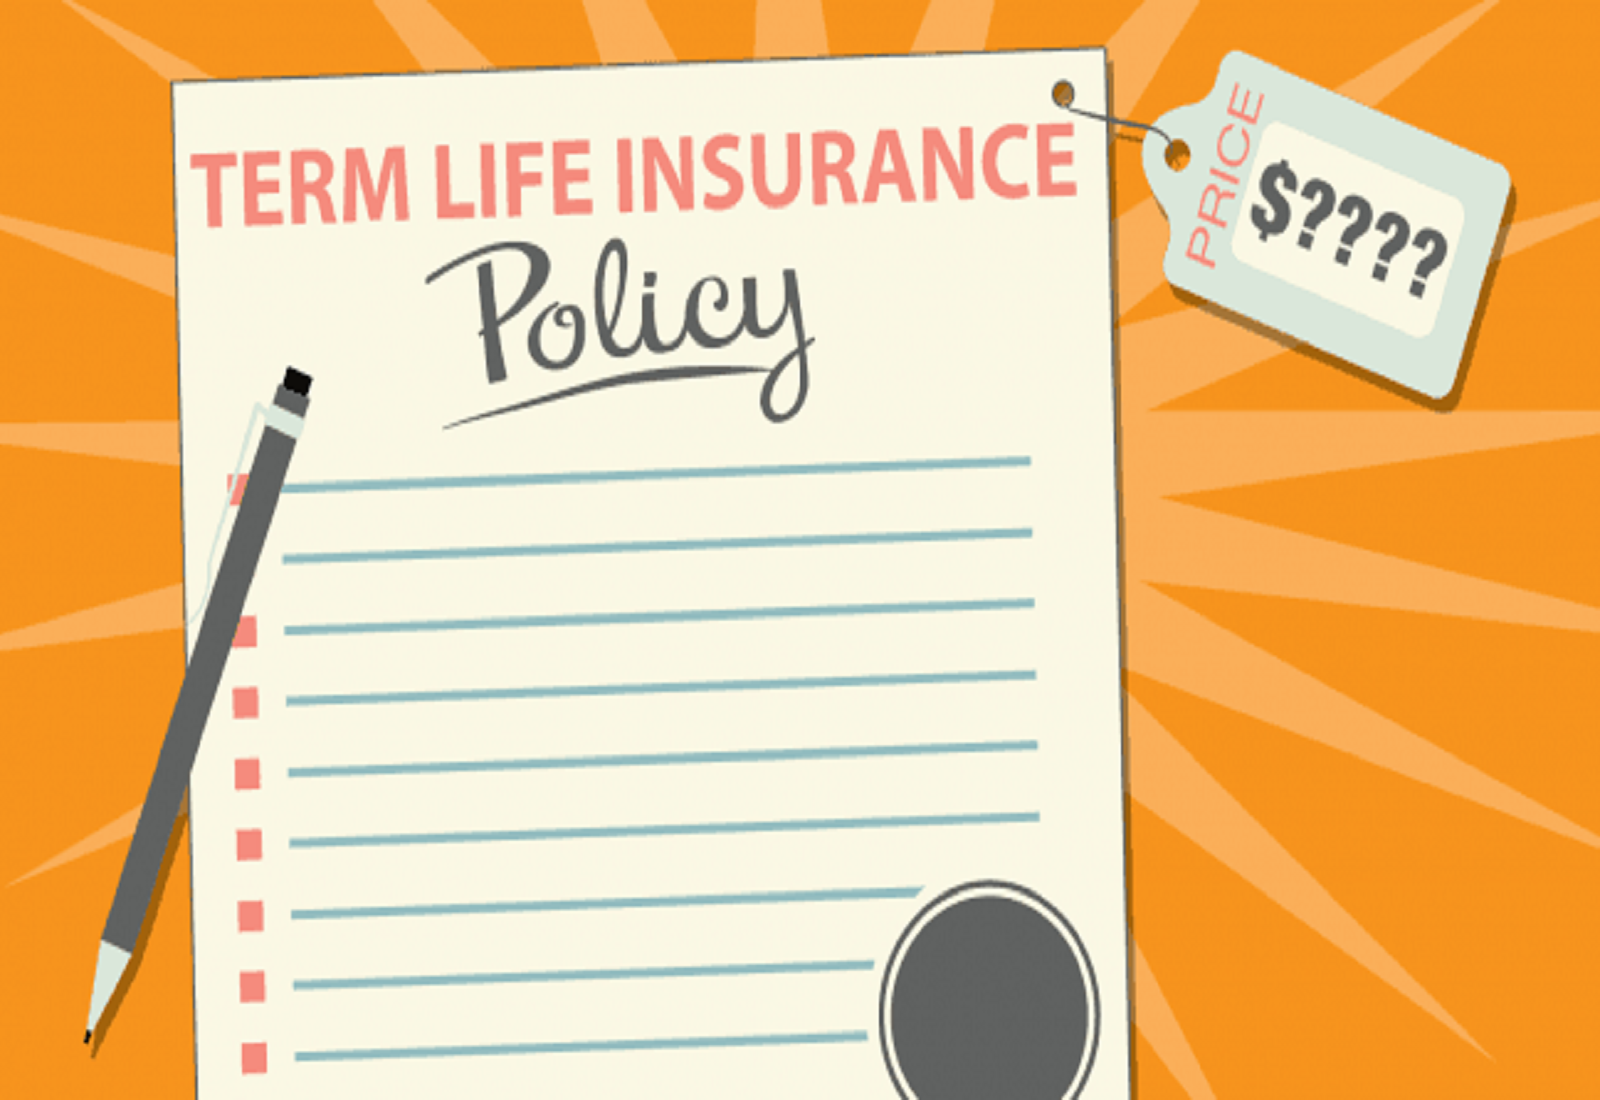 Best Term Life Insurance Providers in 2020